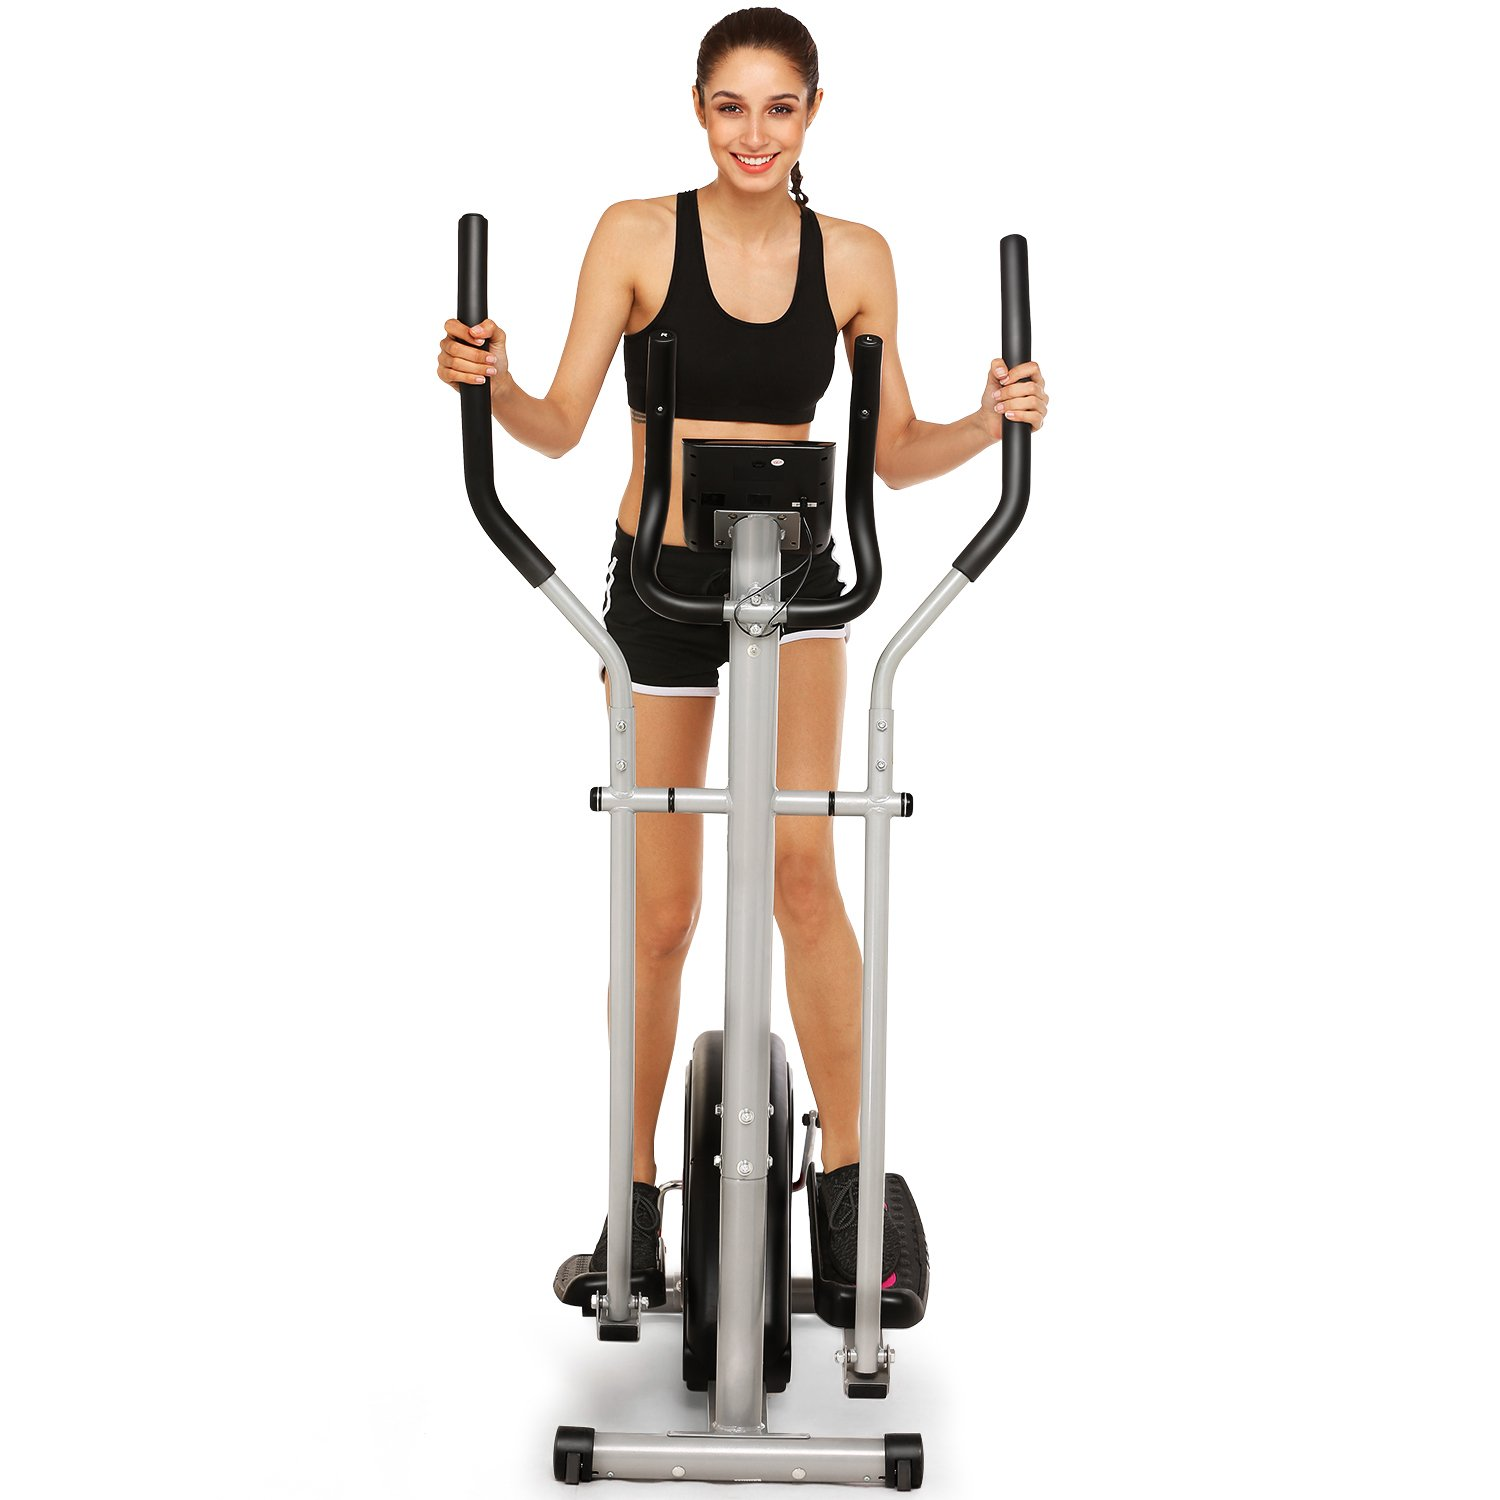 Fast 88 Portable Elliptical Machine Fitness Workout Cardio Training Machine, Magnetic Control Mute Elliptical Trainer with LCD Monitor, Elliptical Machine Trainer (Black) by Fast 88 (Image #2)